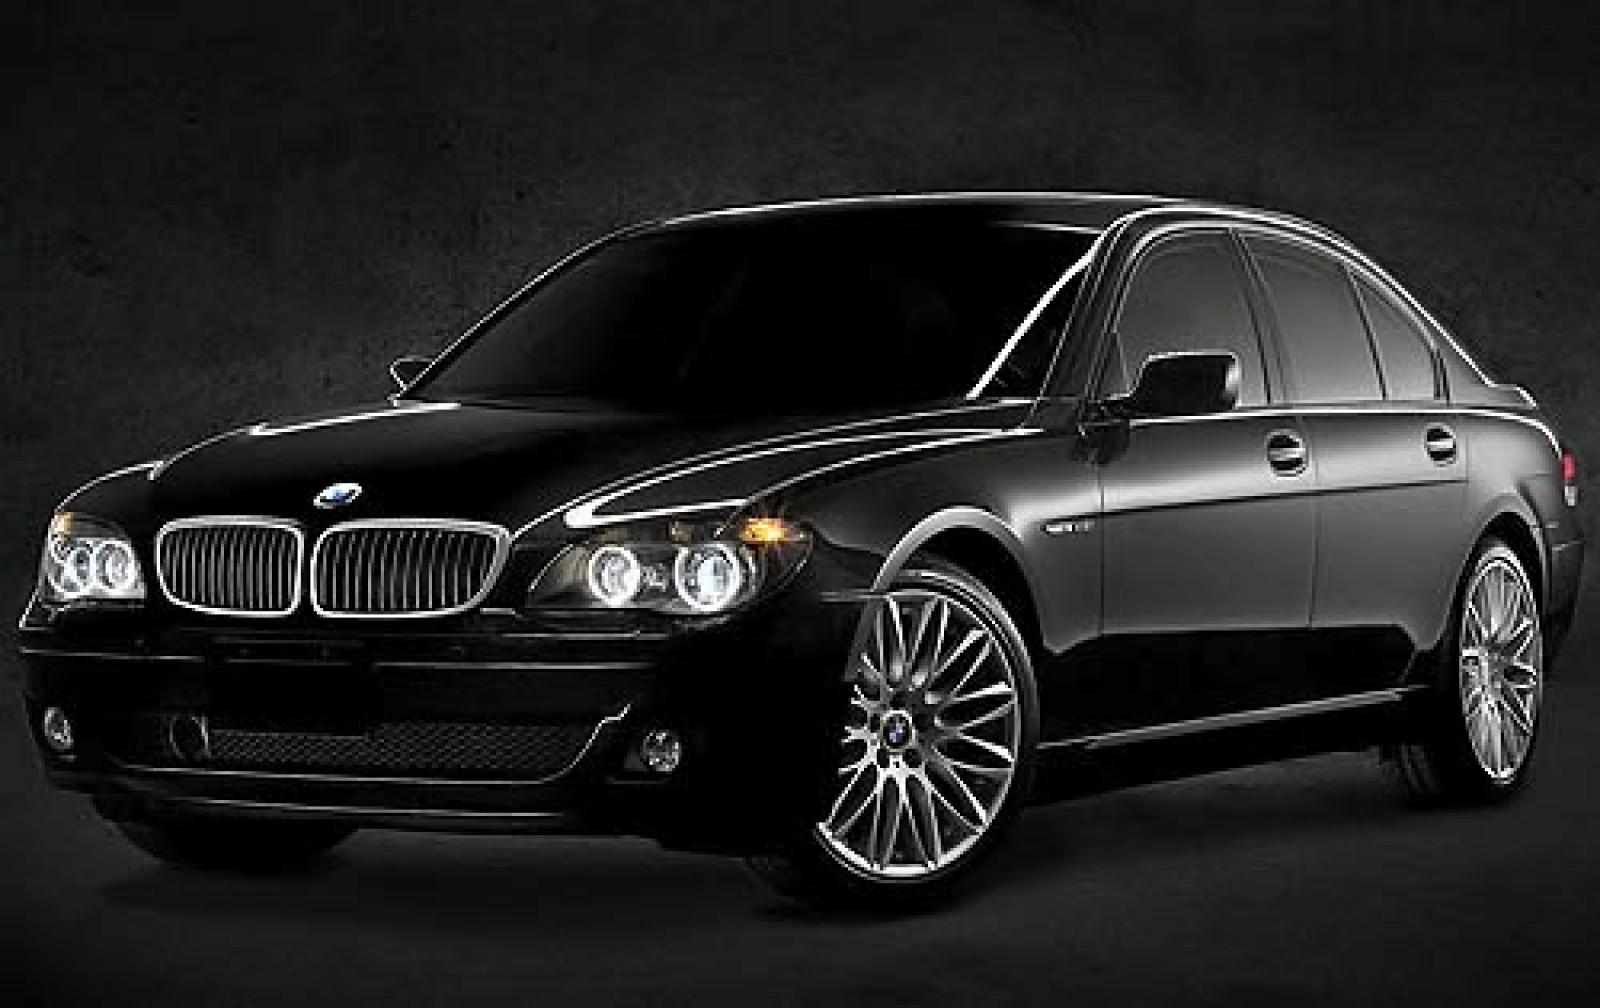 2008 bmw 7 series information and photos zombiedrive. Black Bedroom Furniture Sets. Home Design Ideas